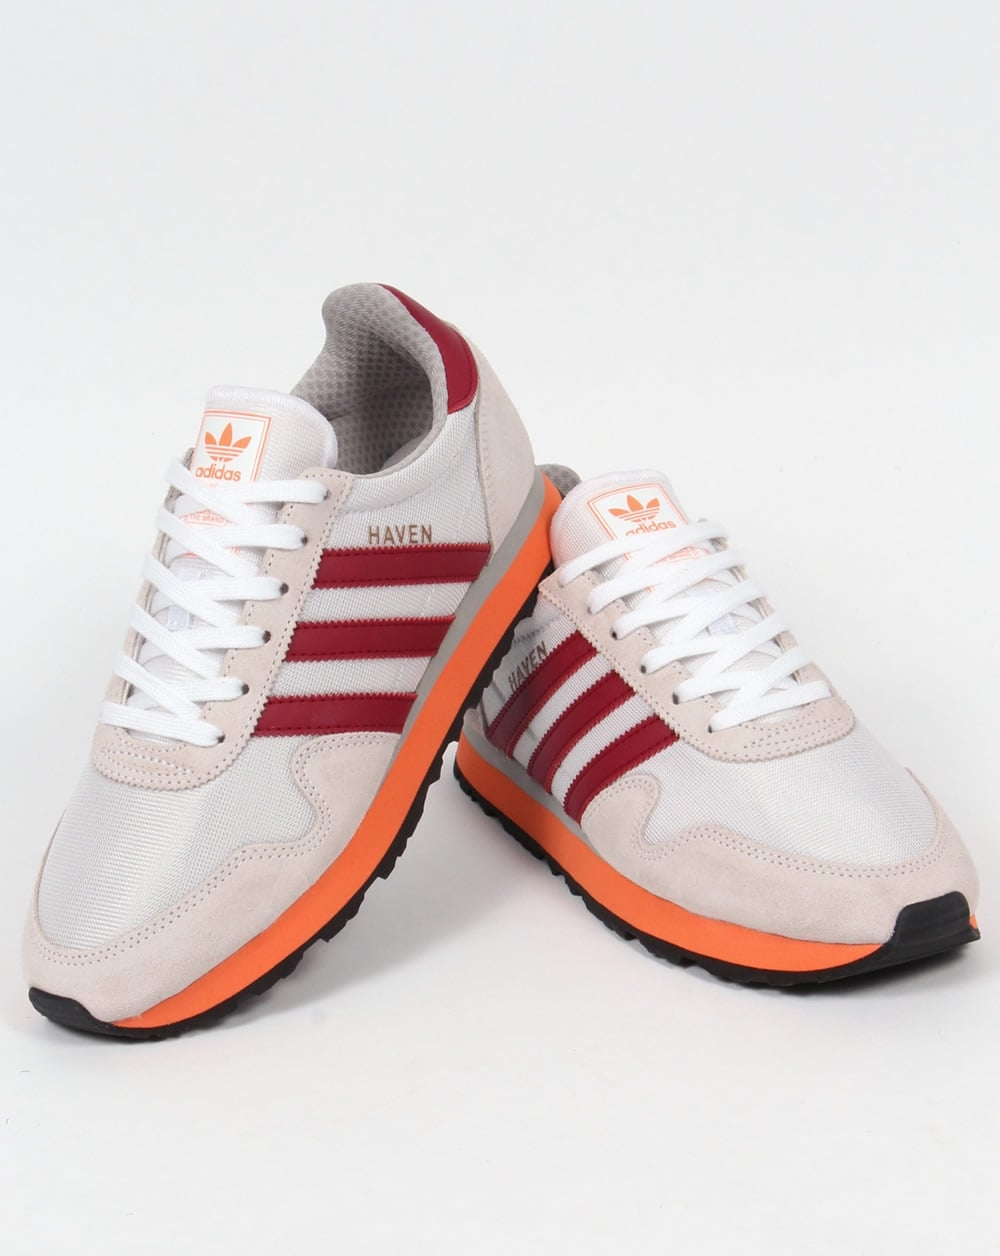 later vrouwen online te koop Adidas Haven Trainers White/Burgundy Red